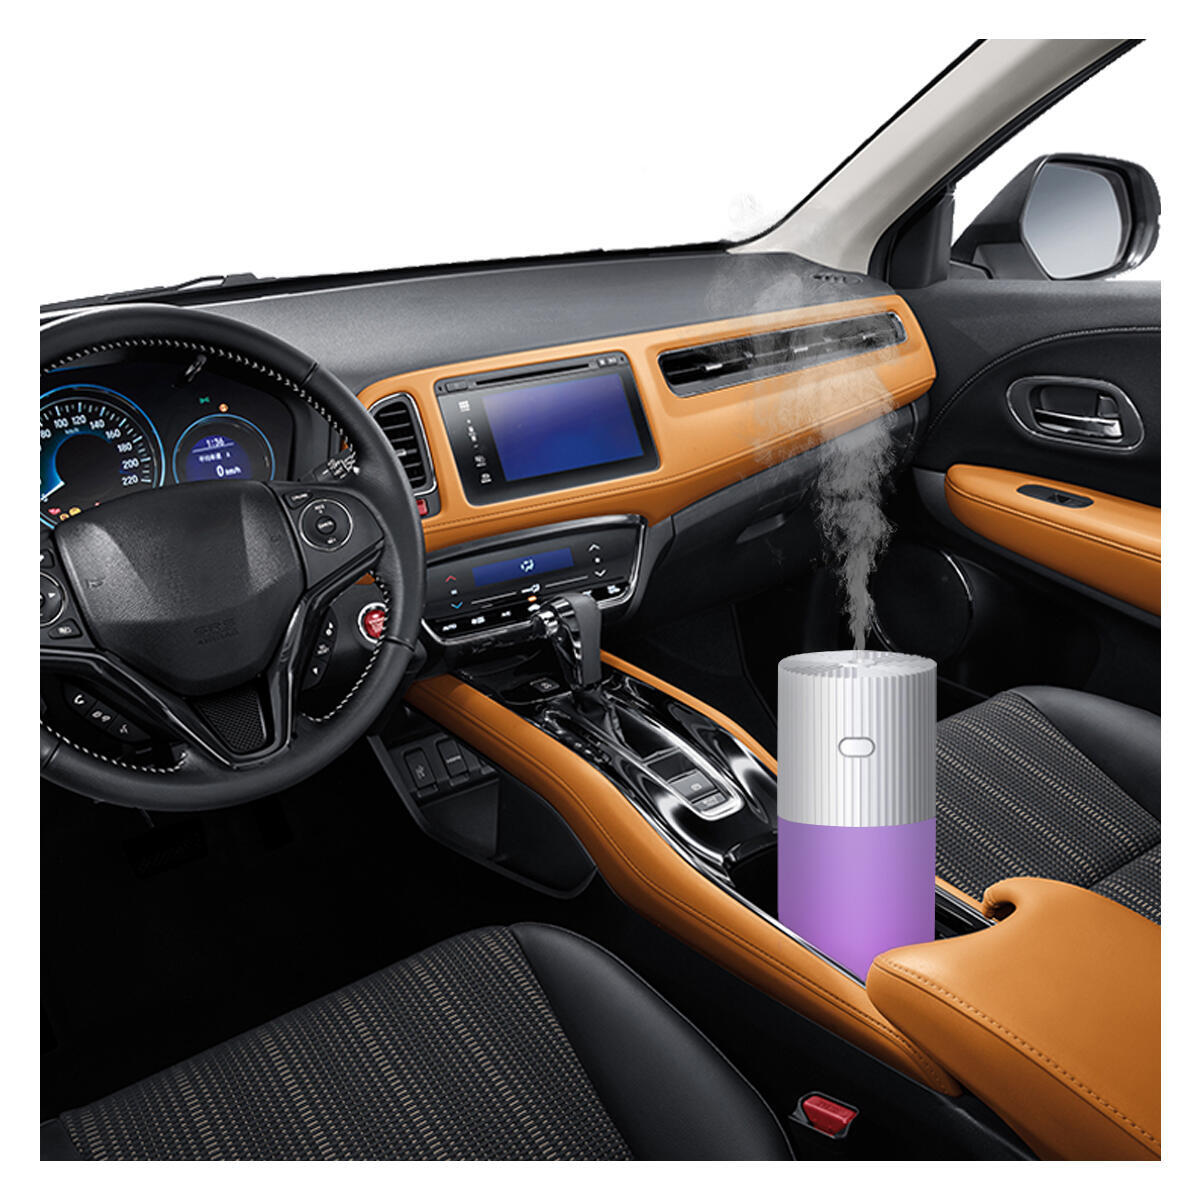 Car Diffuser Humidifiers, YJY Portable Cool Mist Humidifier for Bedroom Travel Baby(110514)